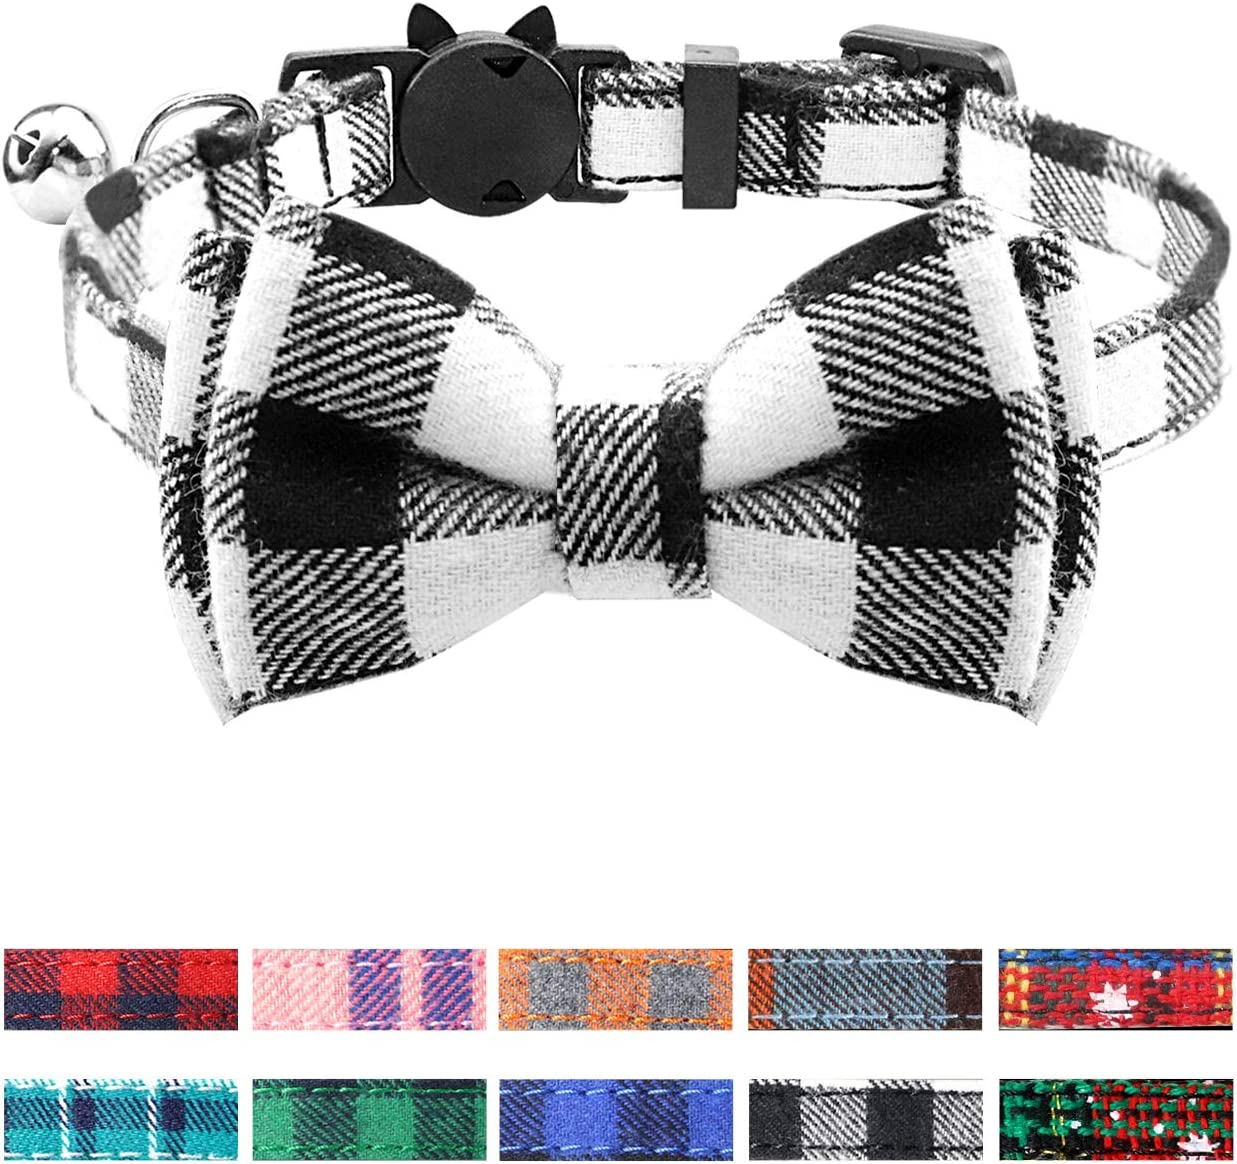 Joytale Breakaway Cat Collar with Bow Tie and Bell, Cute Plaid Patterns, 1 or 2 Pack Kitty Safety Collars